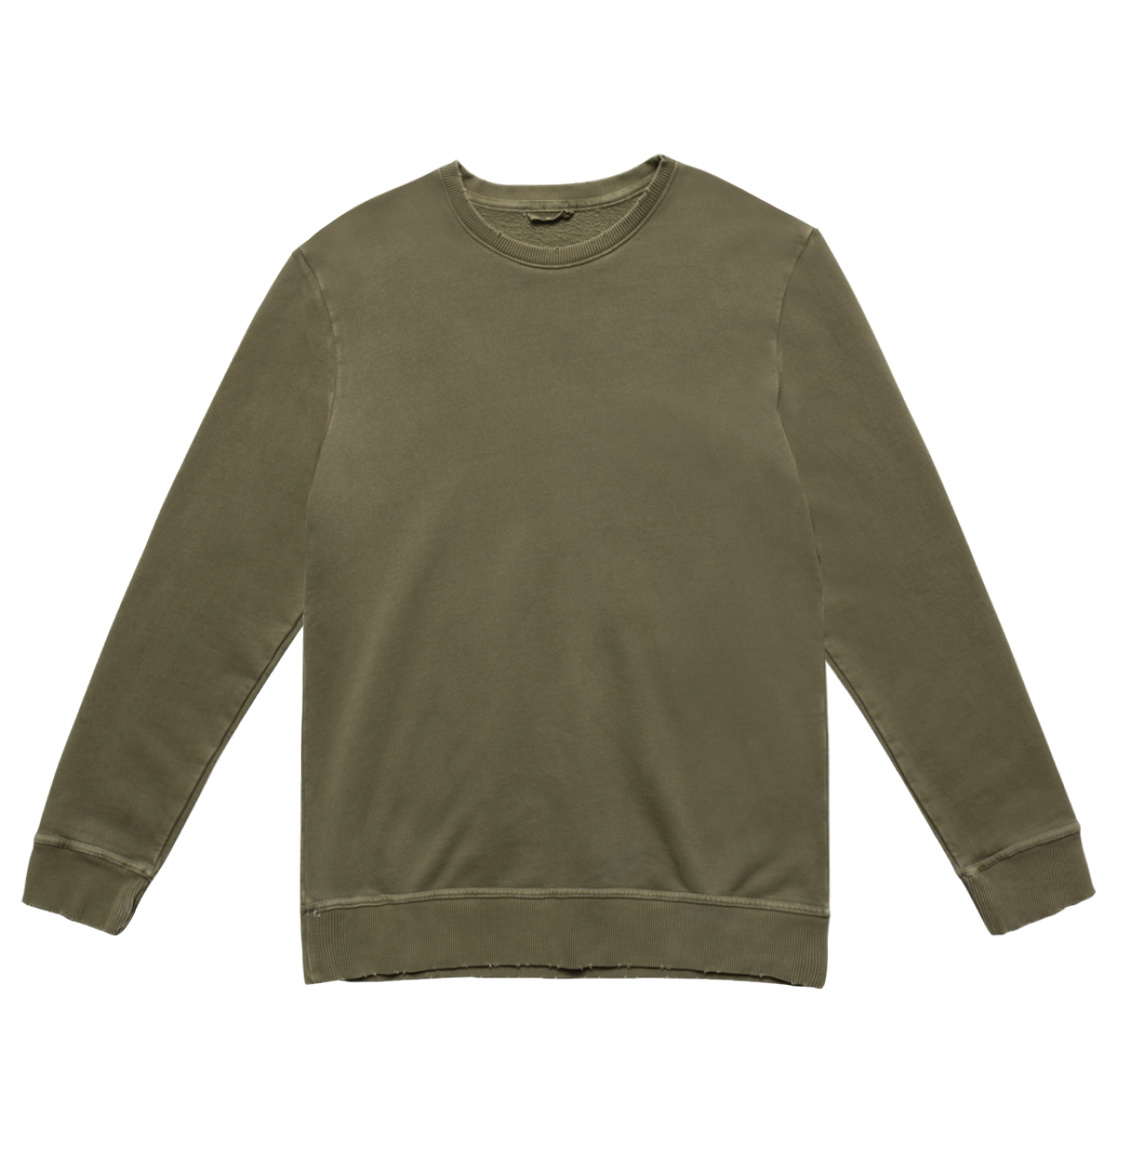 Distressed Crew-Neck Sweatshirt Khaki